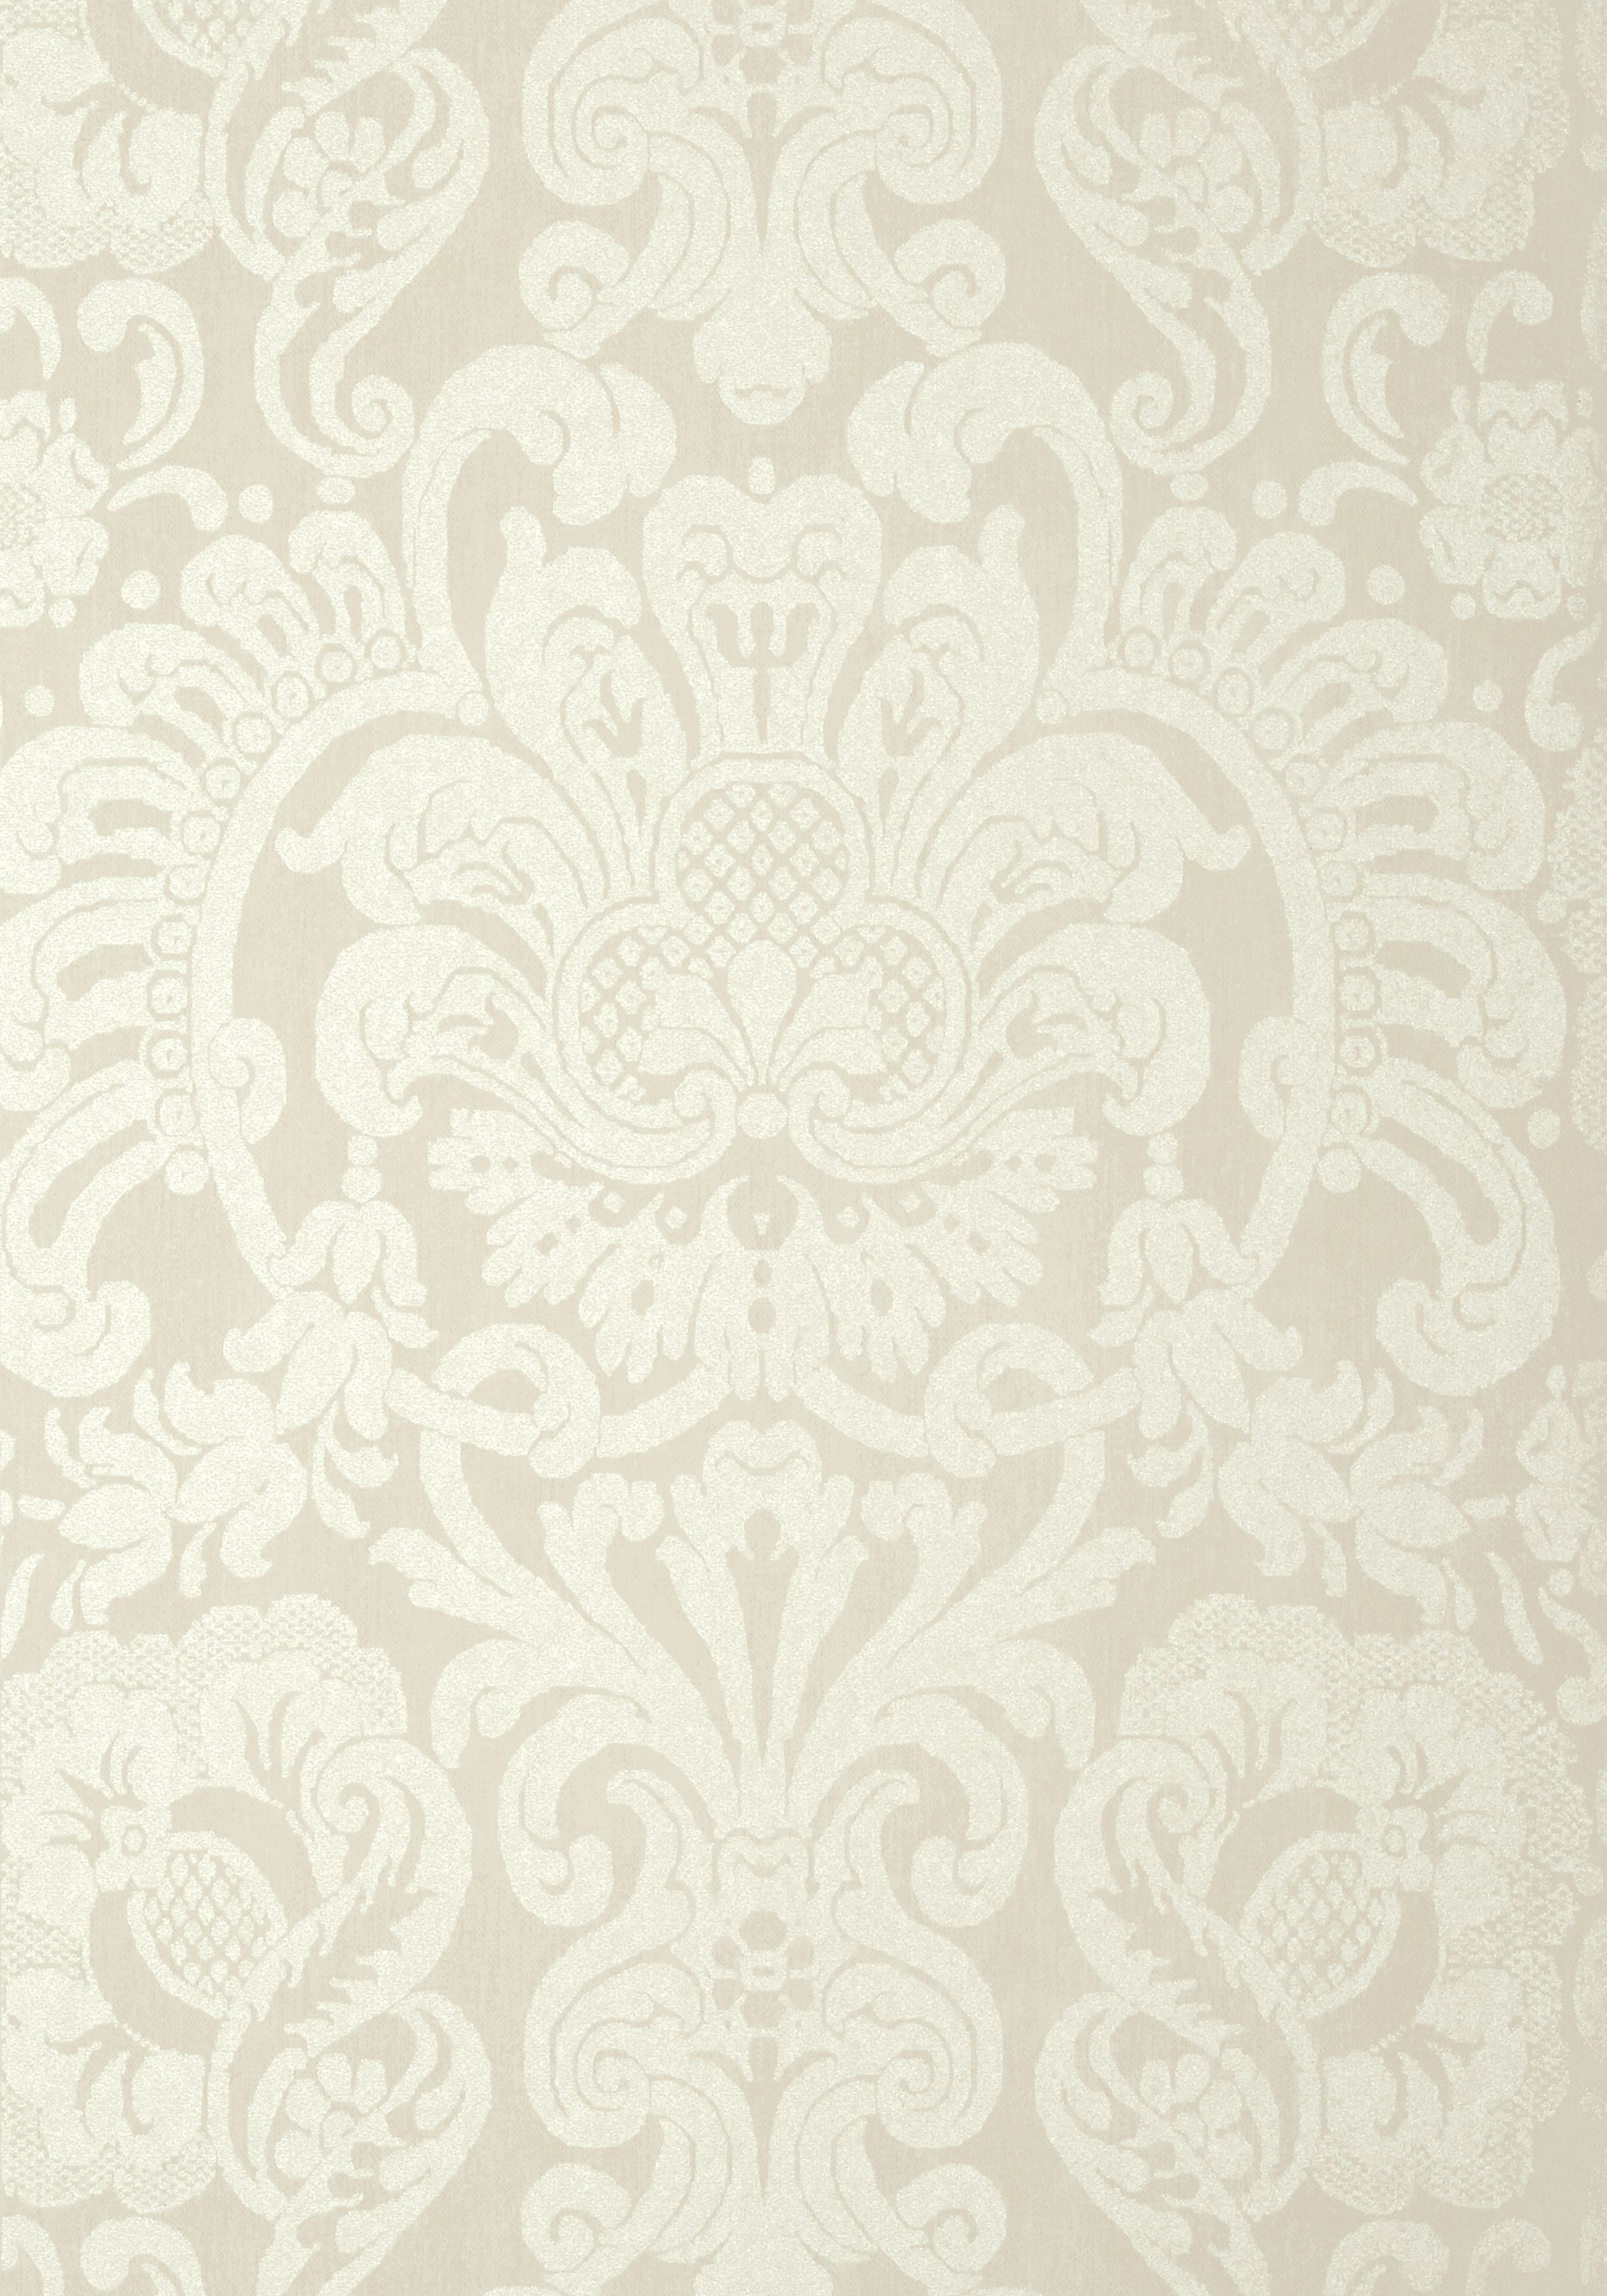 Damask wallpaper hallway ideas  DORIAN DAMASK Pearl T Collection Damask Resource  from